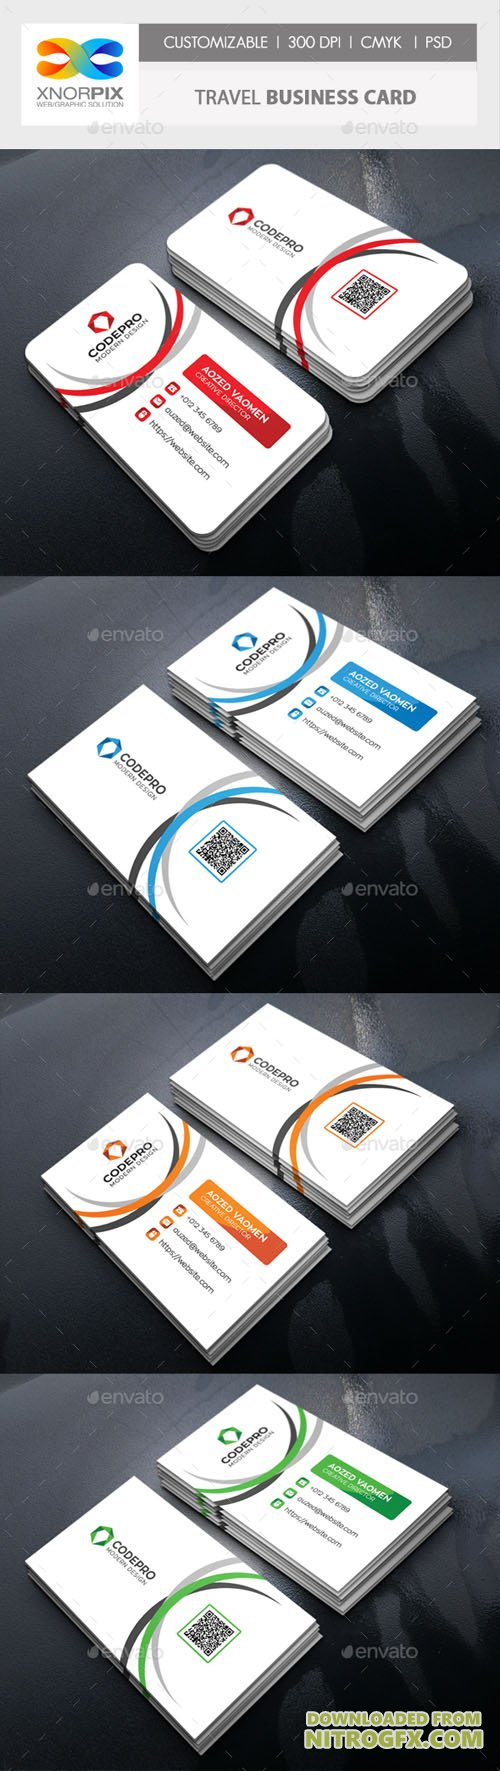 GraphicRiver - Travel Business Card 20446217